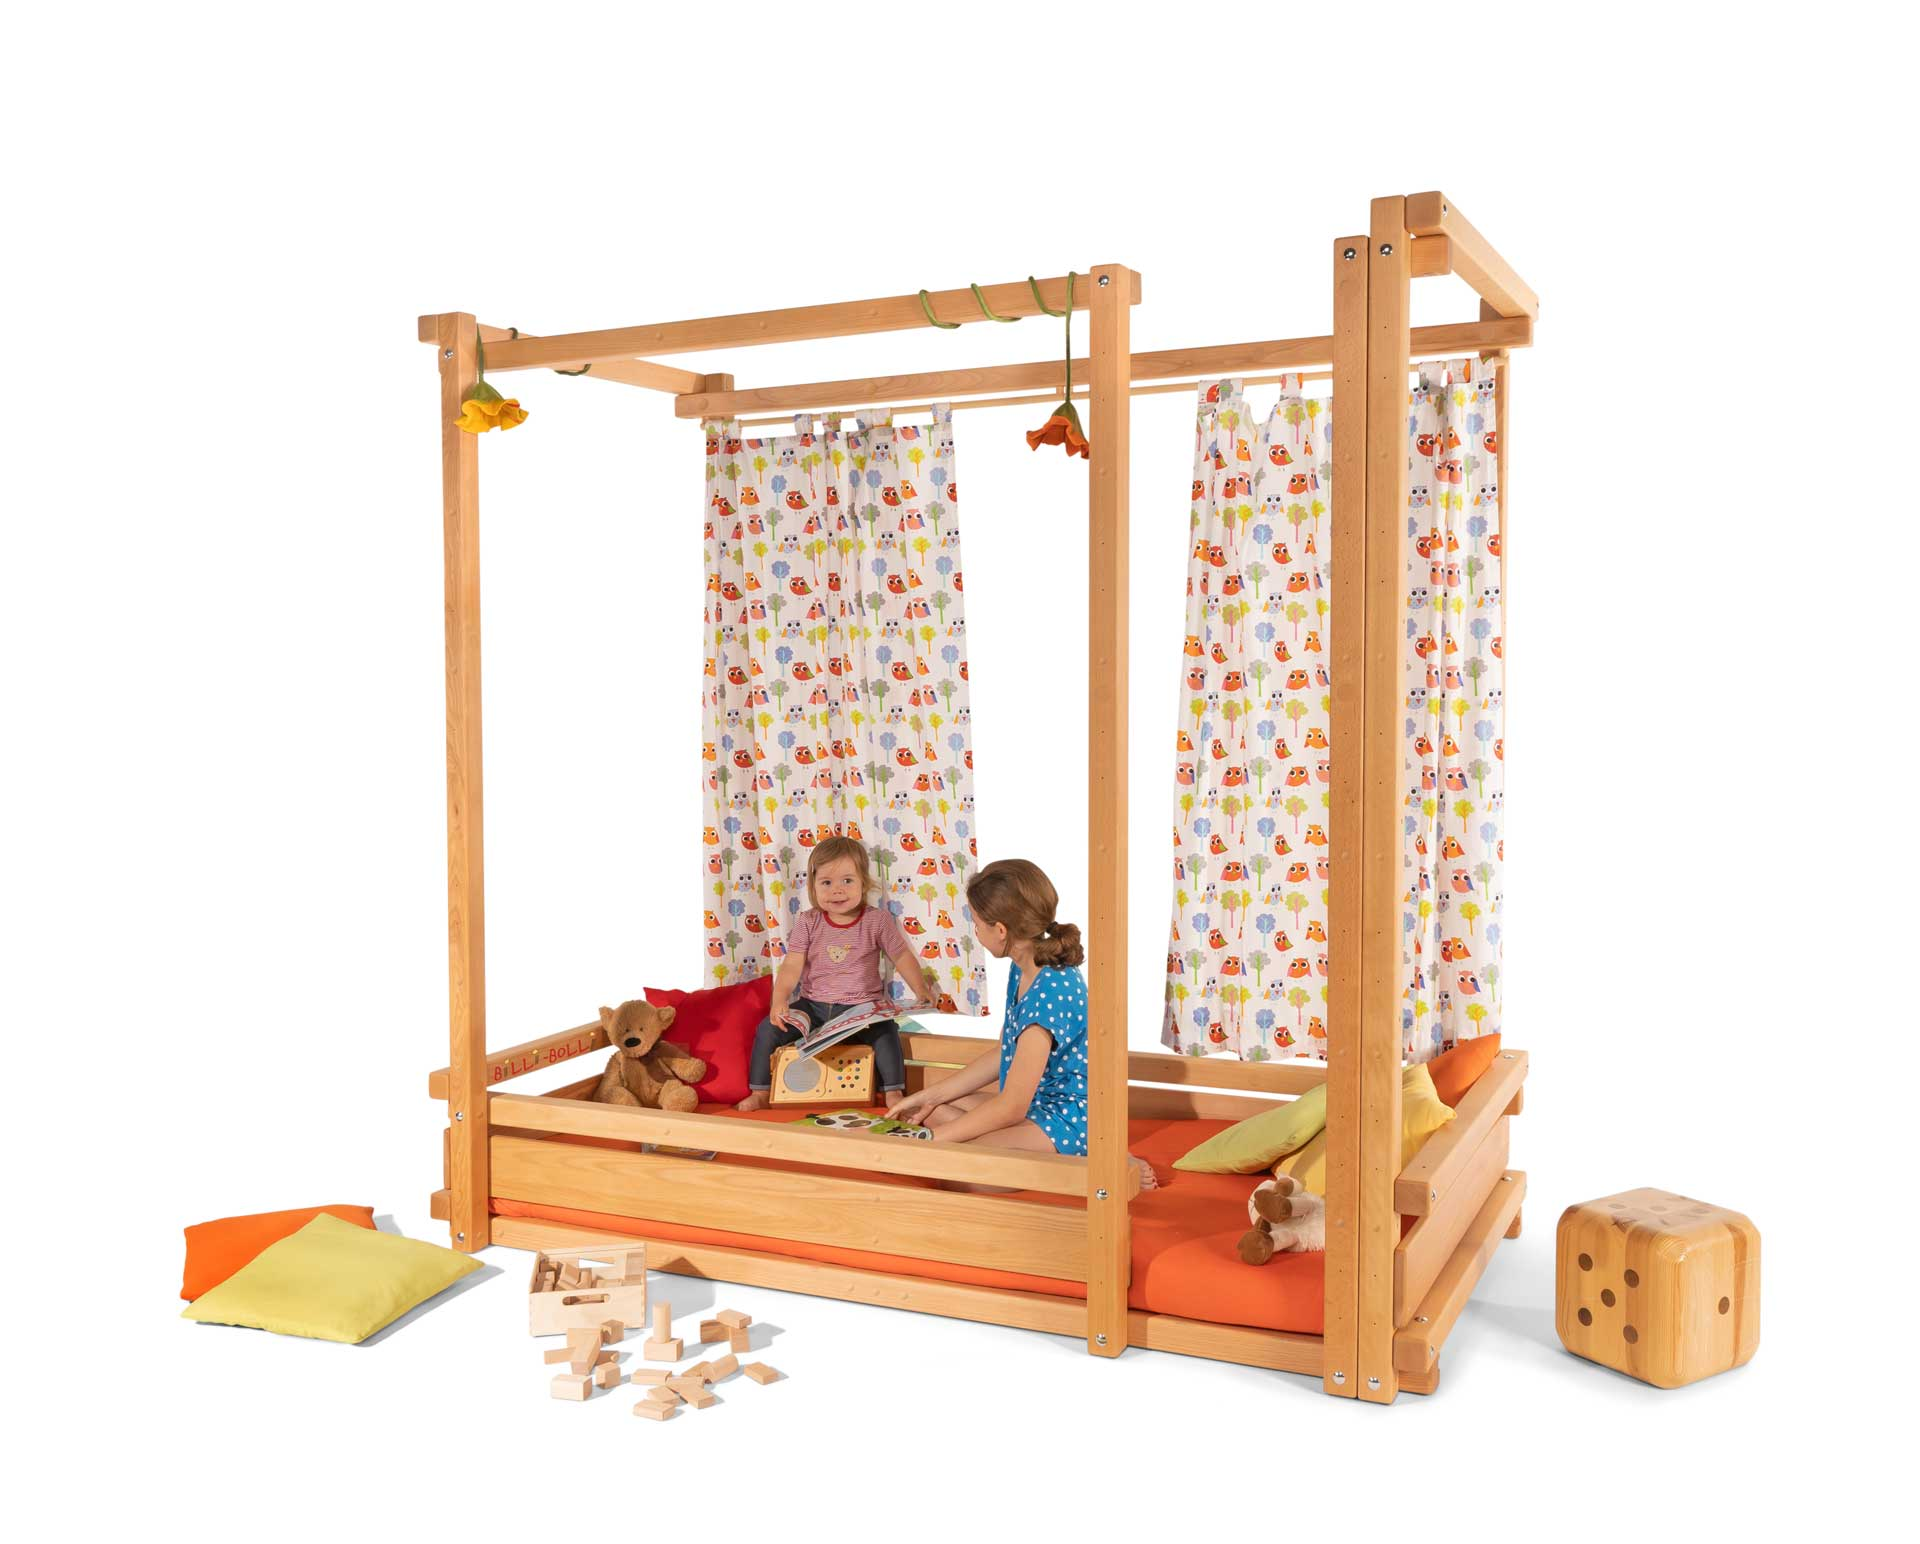 The Loft Bed Adjustable by Age in beech, assembled at height 1. Pictured with Curtain Rods and mattress Nele Plus.